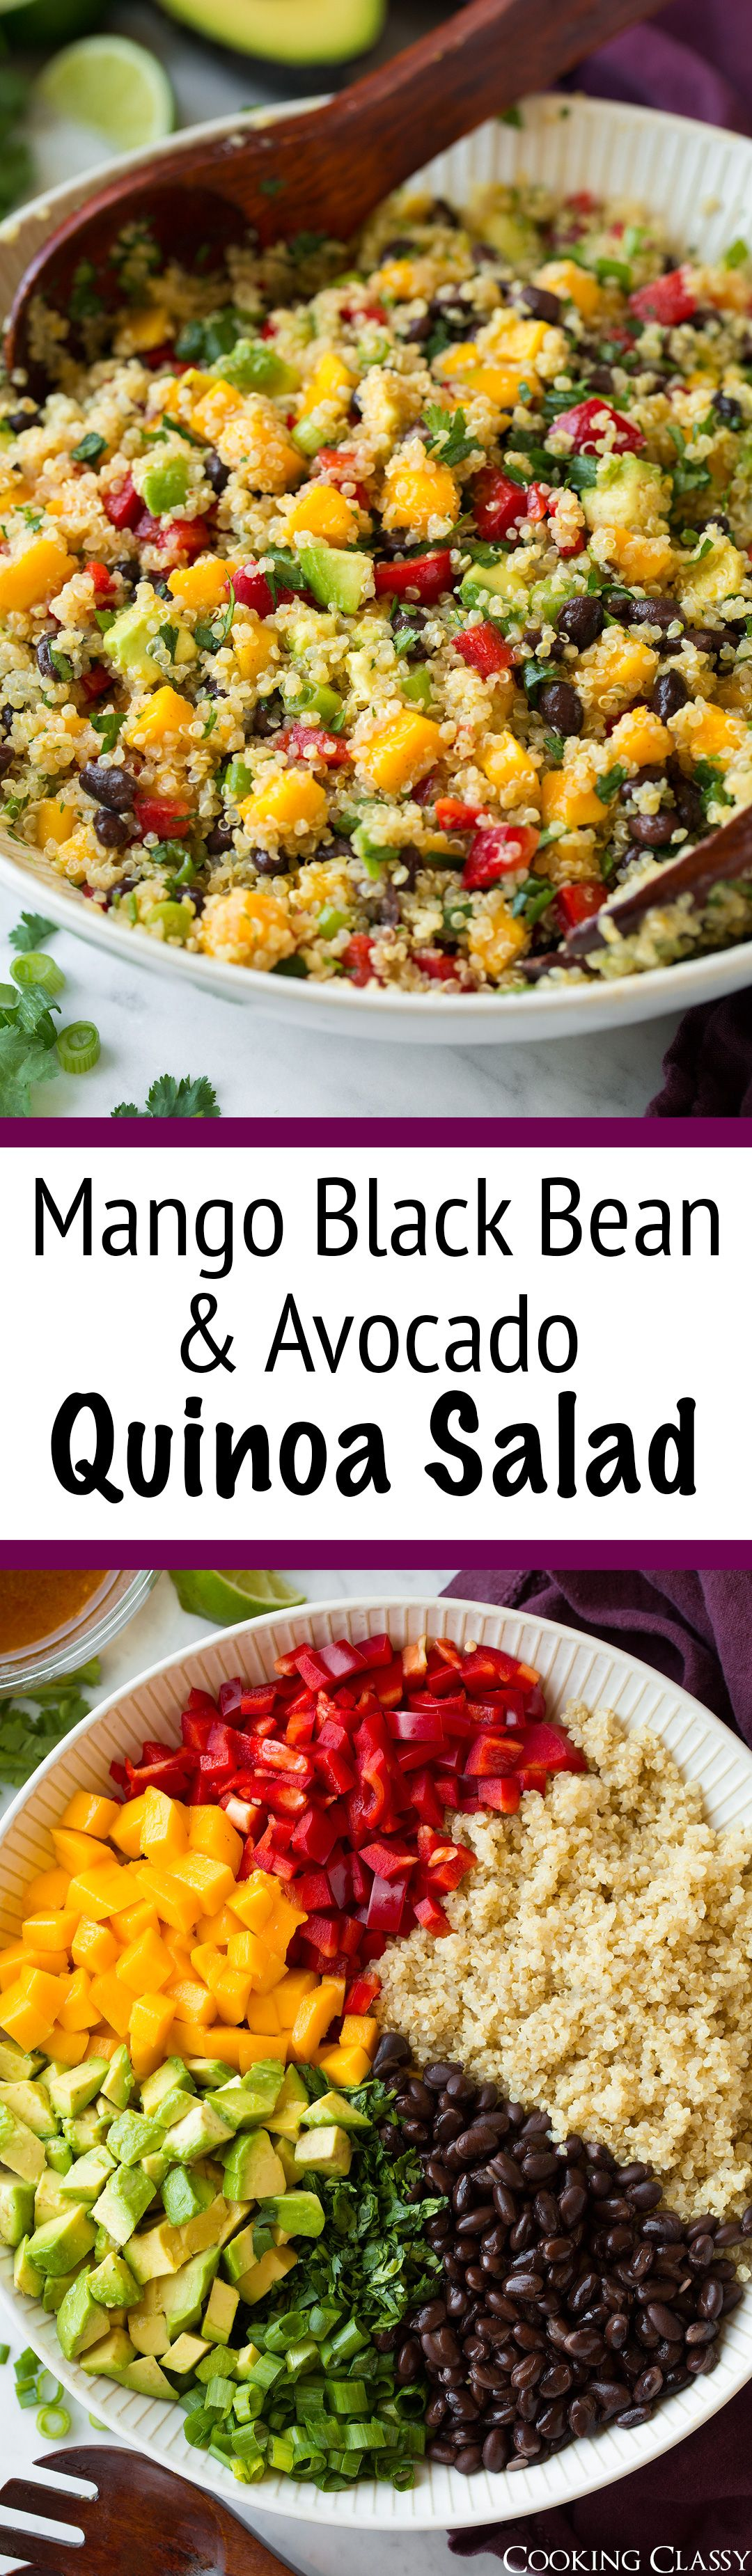 Mango Black Bean Avocado Salad Healthy Recipes Healthy Cooking Avocado